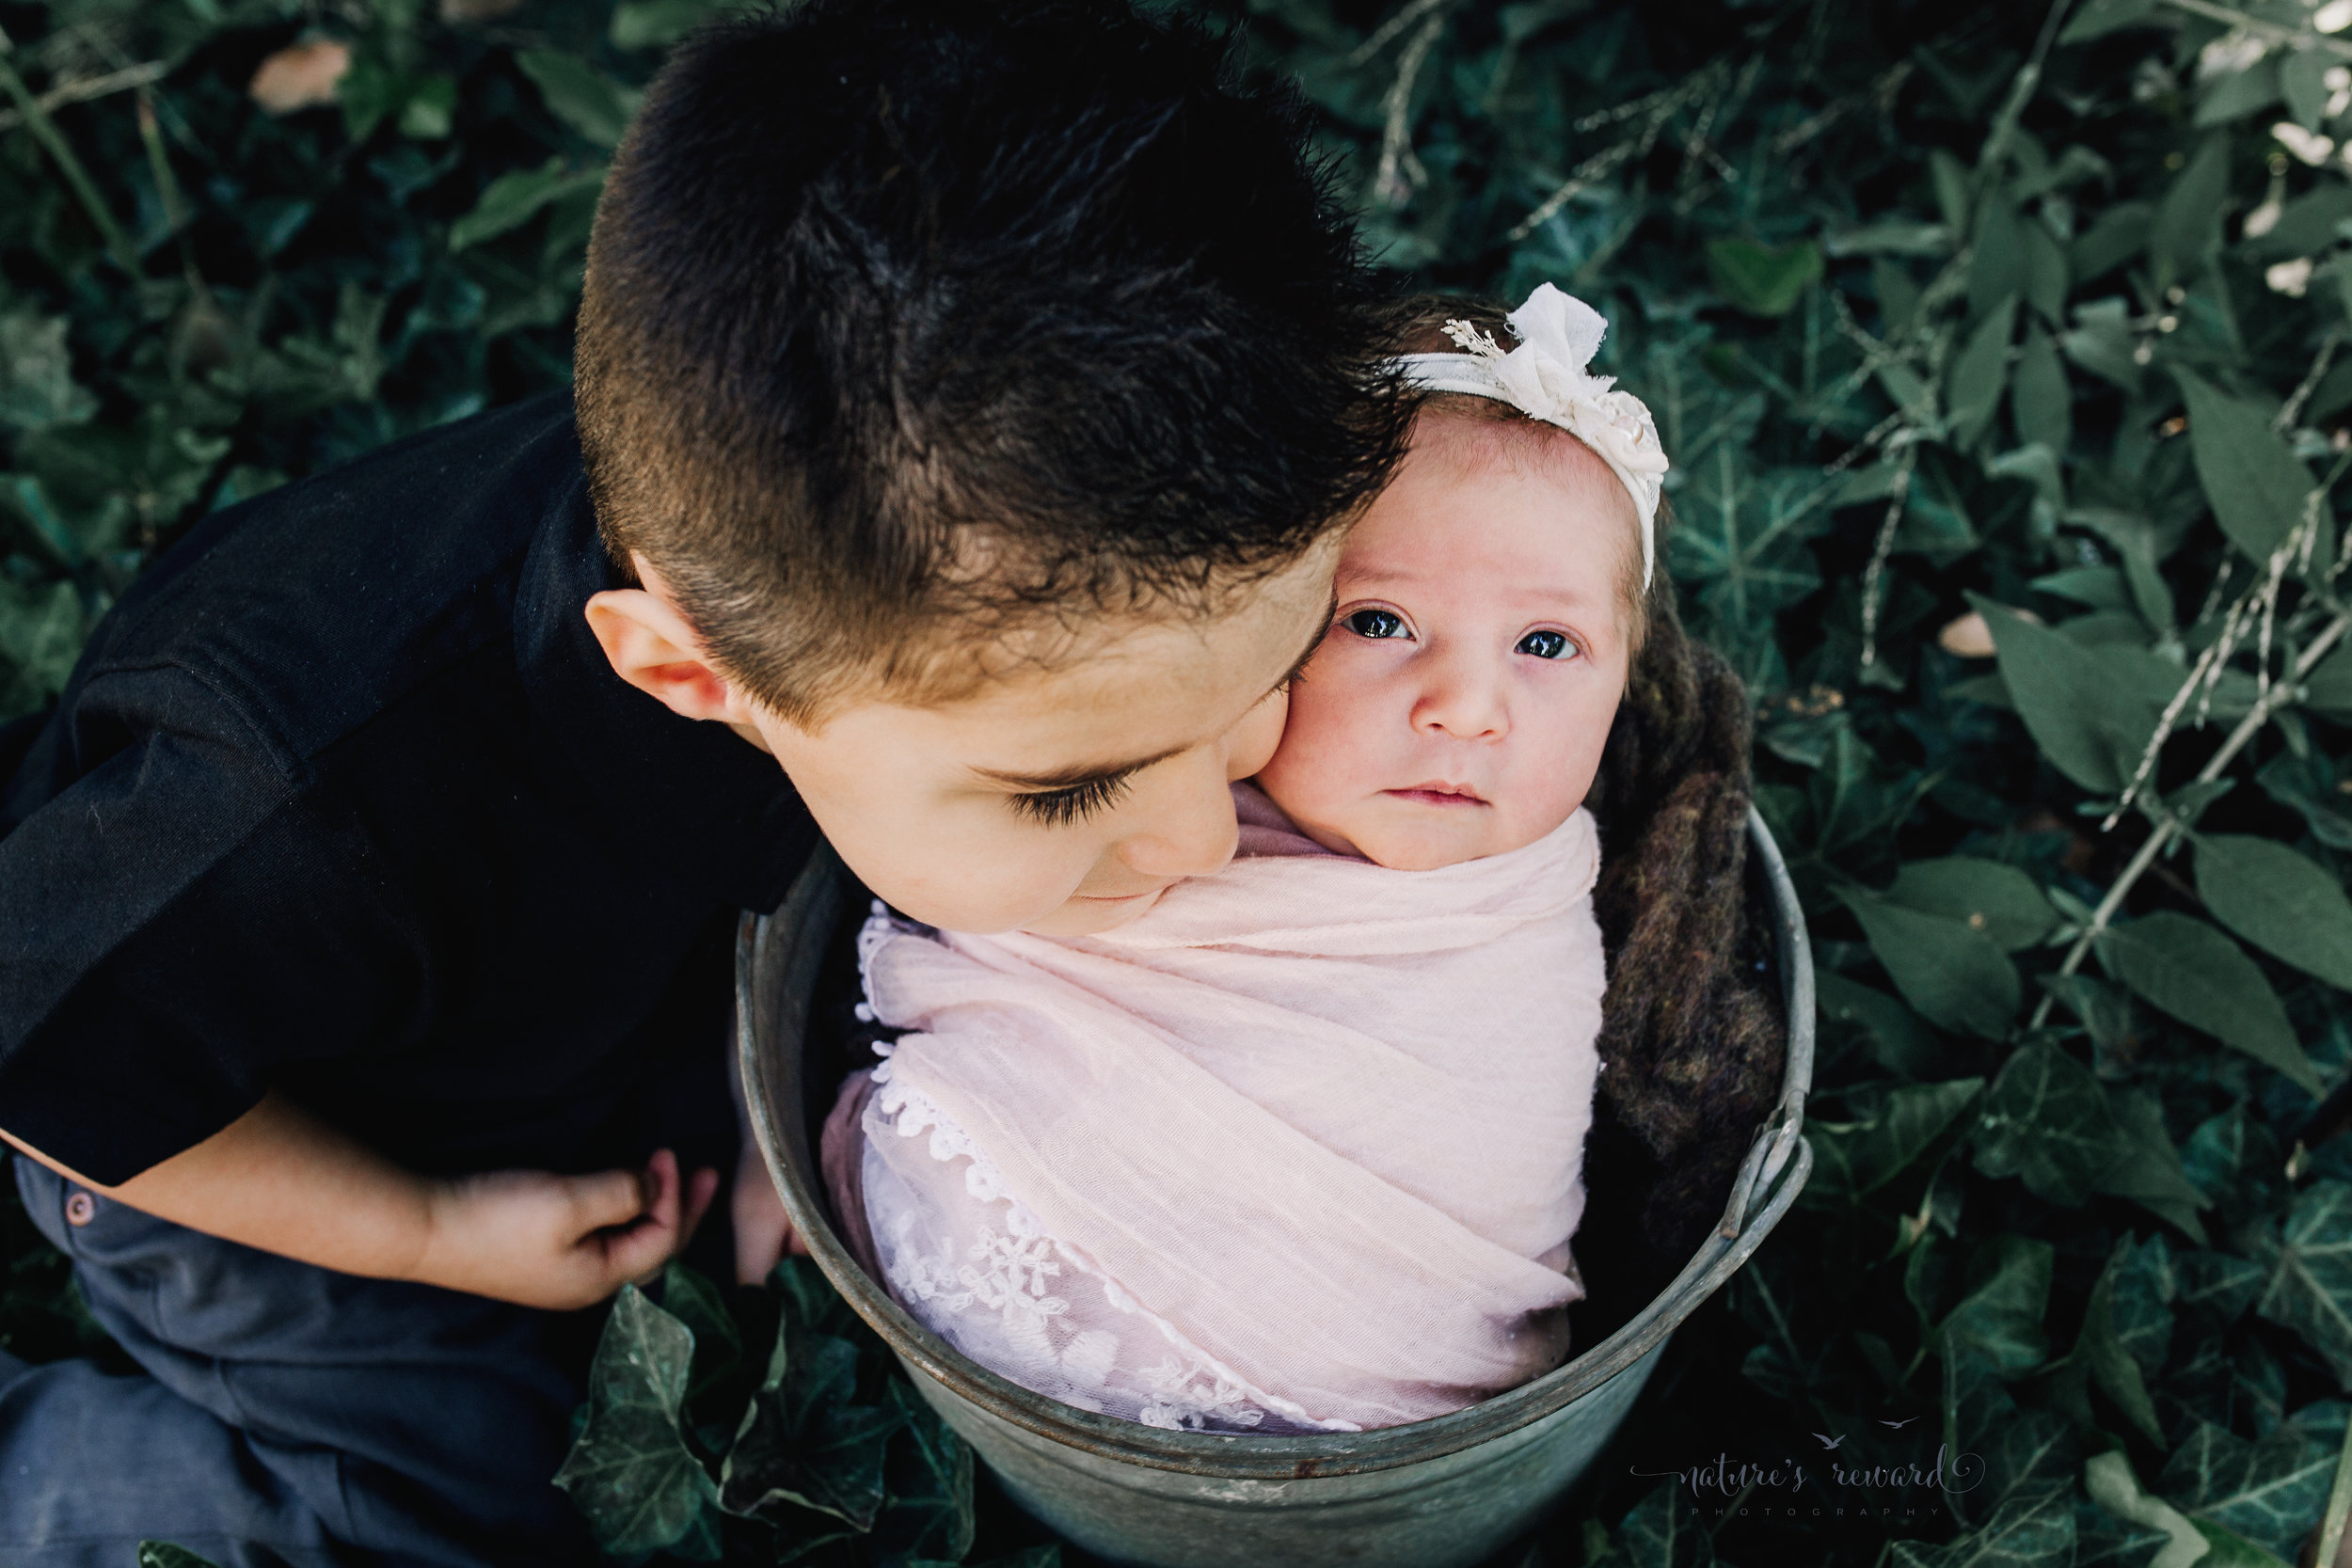 Newborn Baby Girl swaddled in pink lace in a garden with white flowers a bucket being loved by her big brother. A Portrait By Nature's Reward Photography, a San Bernardino Family, Child, and Newborn Baby Photographer.